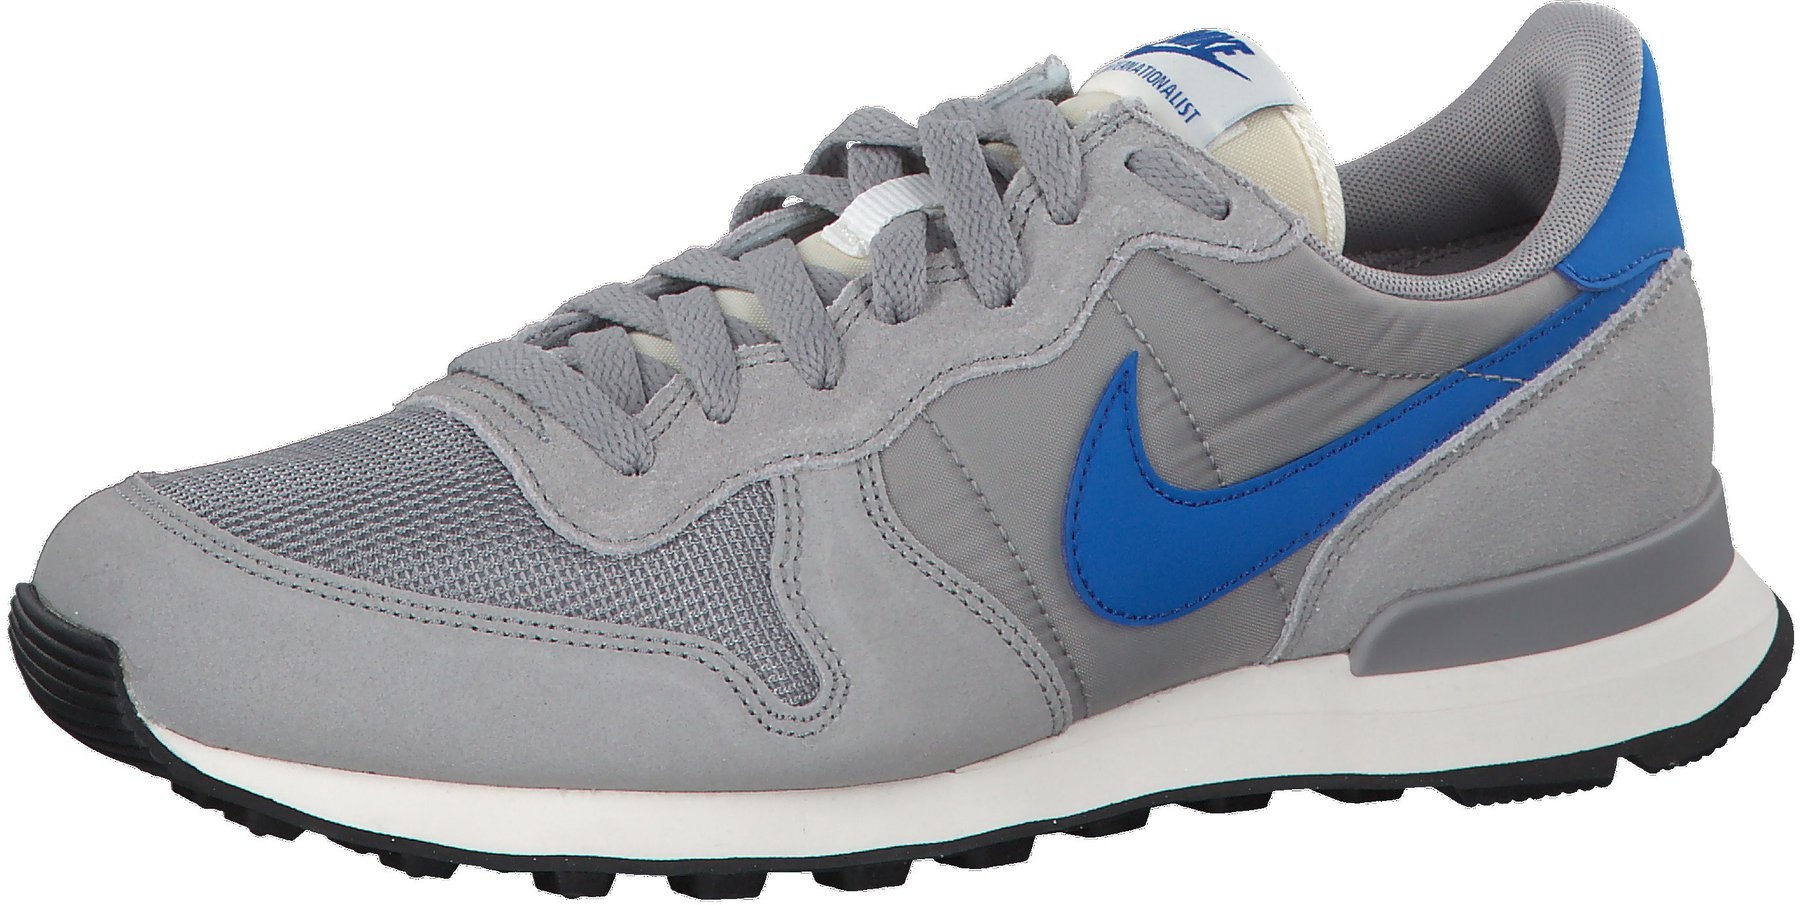 Nike Internationalist Sneaker (silber/blau/grau)